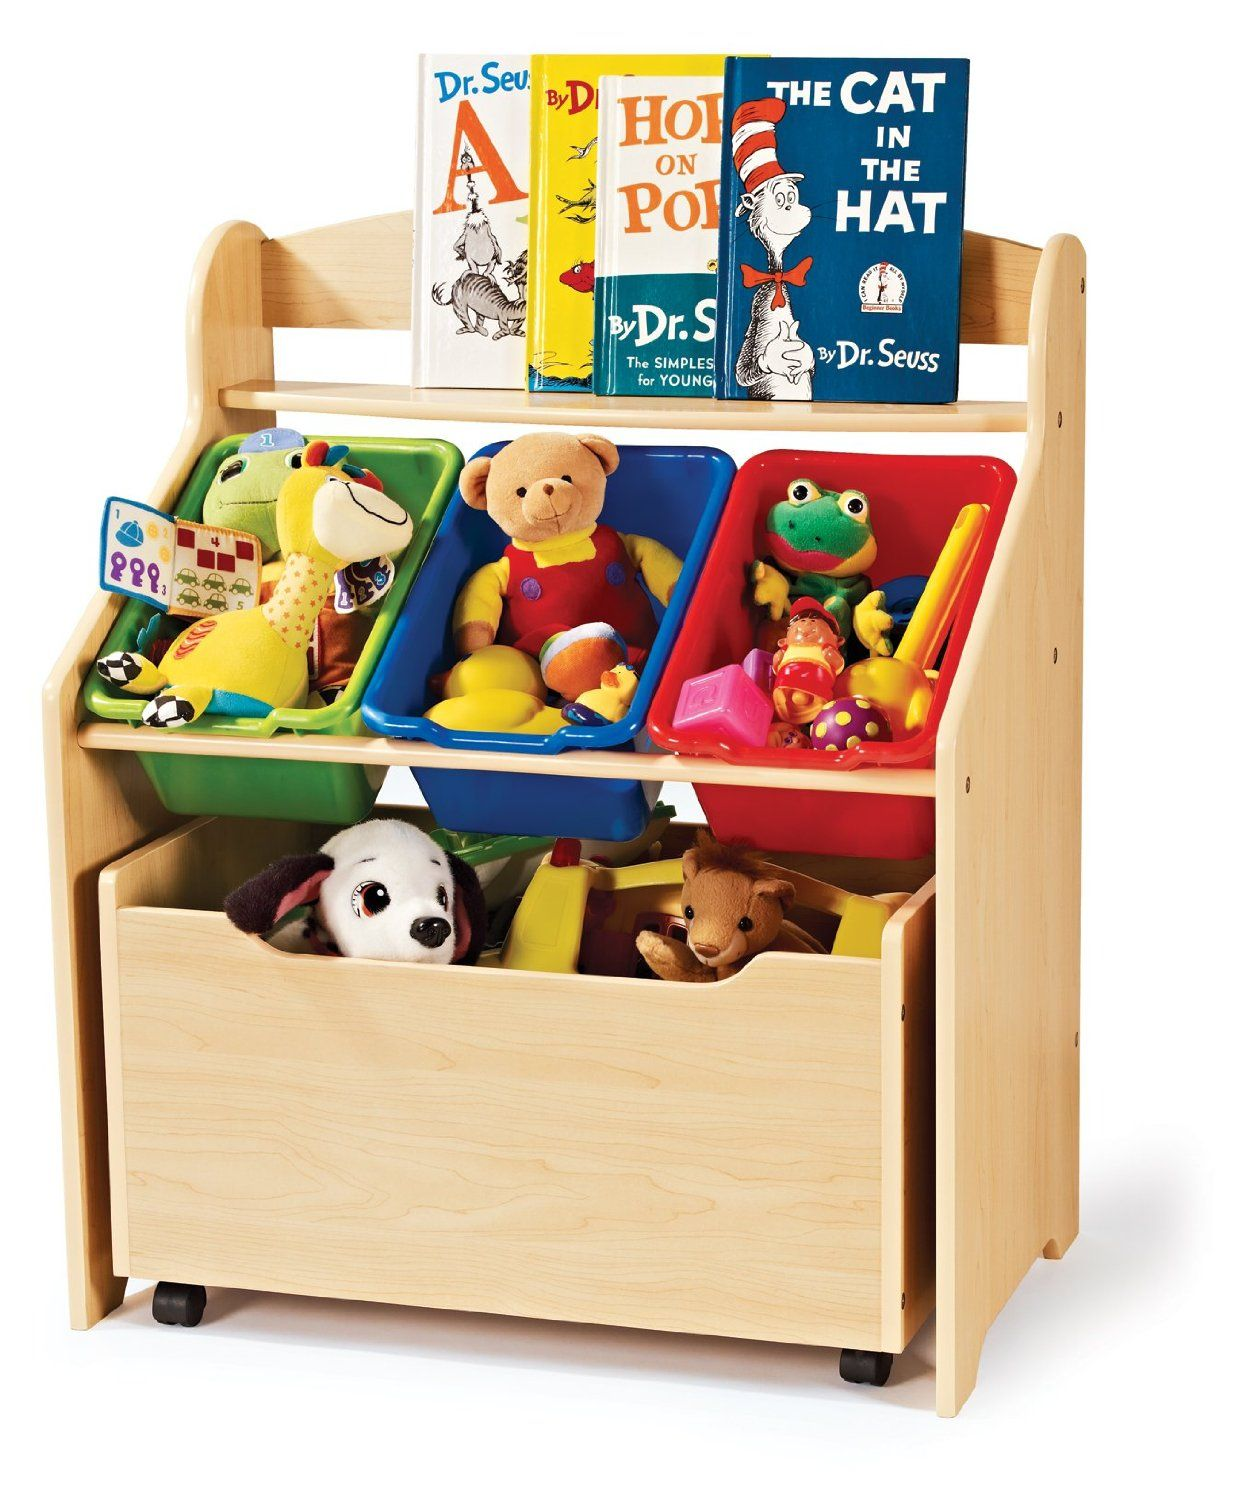 10 Types Of Toy Organizers For Kids Bedrooms And Playrooms Buying Guide Kid Toy Storage Kids Toy Boxes Kids Storage Units